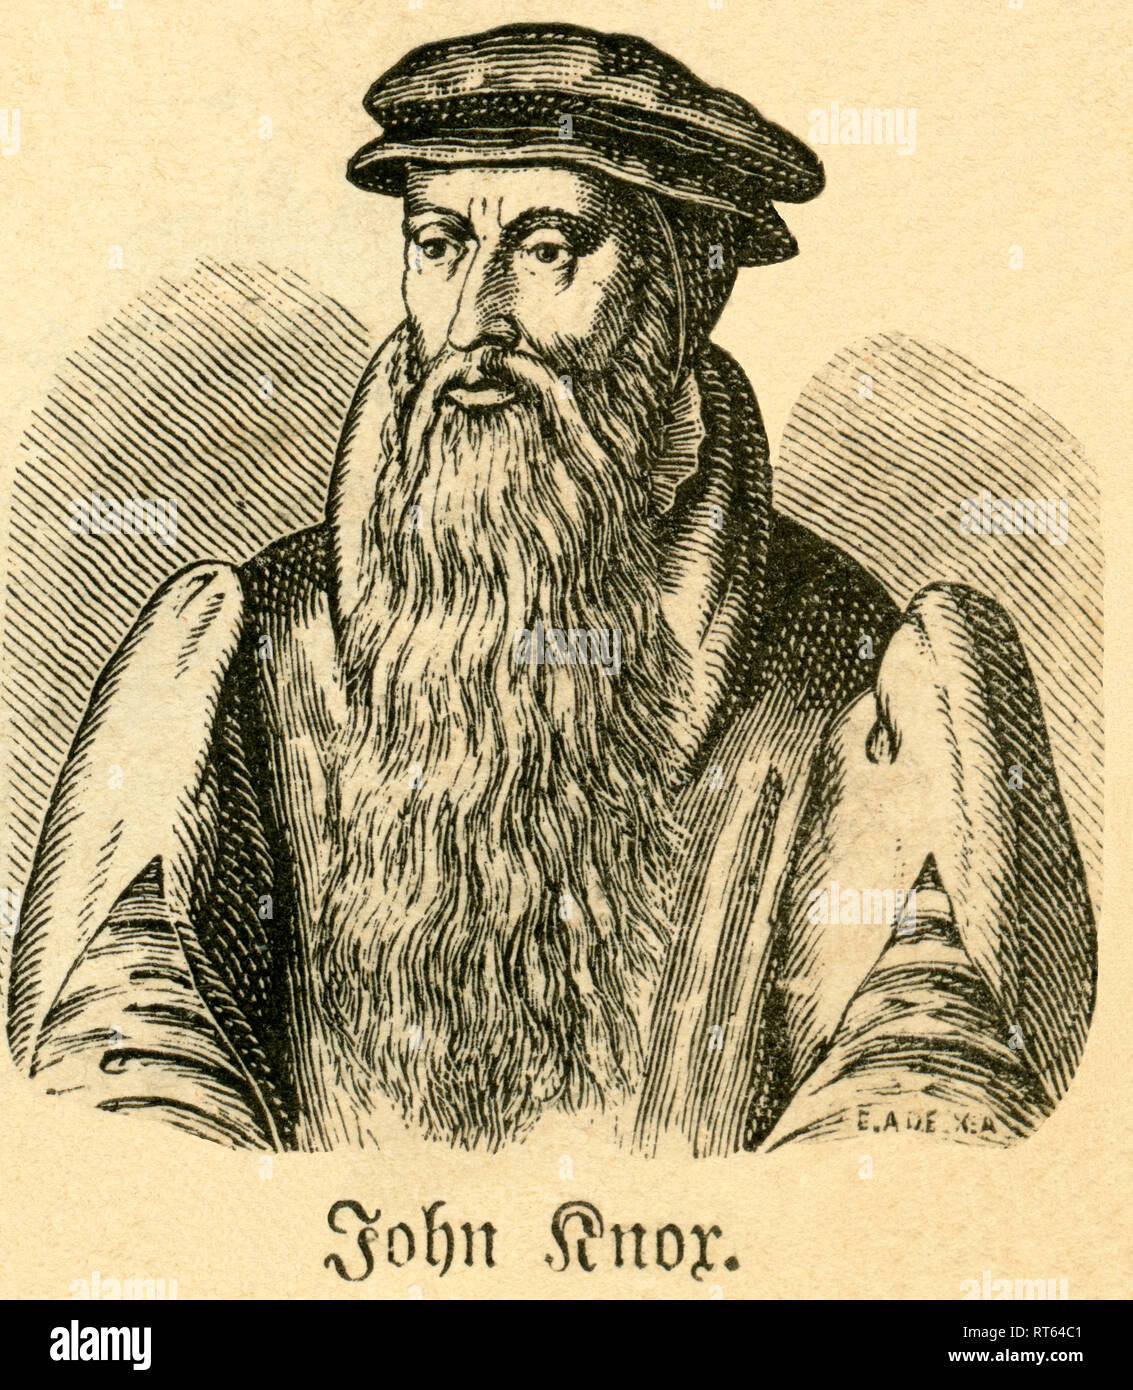 John Knox, Scottish Reformer, theologian and founder of the Presbyterian Church of Scotland, 1514-1572, illustration from ' Die Welt in Bildern ' (illustrations of the world), published by Dr. Chr. G. Hottinger in self-publishing, Berlin, Strasbourg, 1881., Additional-Rights-Clearance-Info-Not-Available - Stock Image